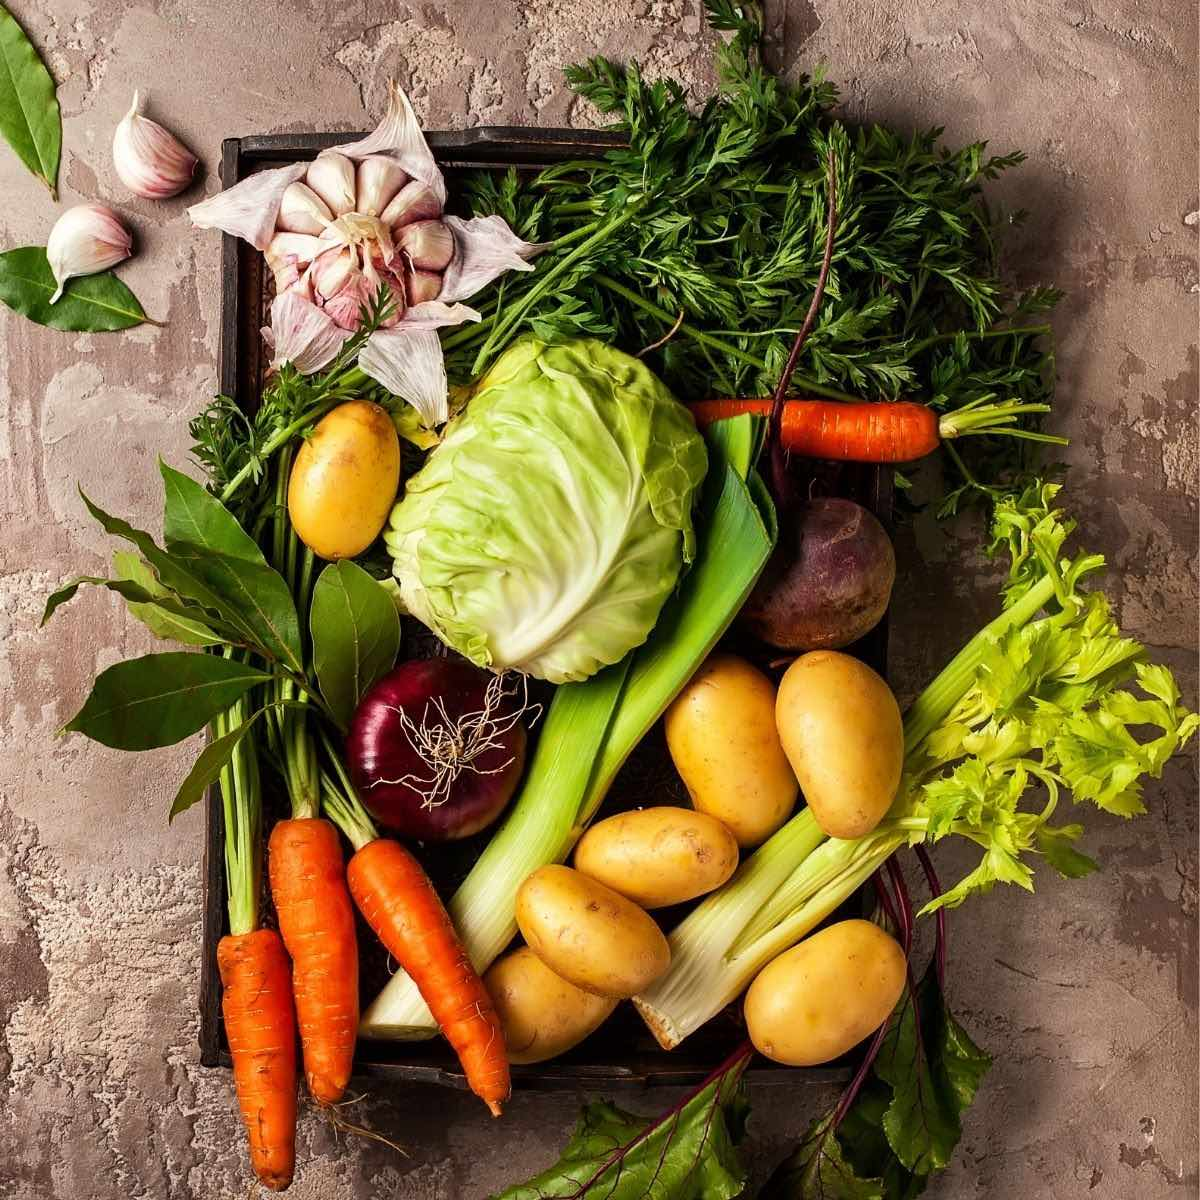 Overhead photo of a variety of vegetables, including carrots and potatoes, to eat on a low histamine diet.